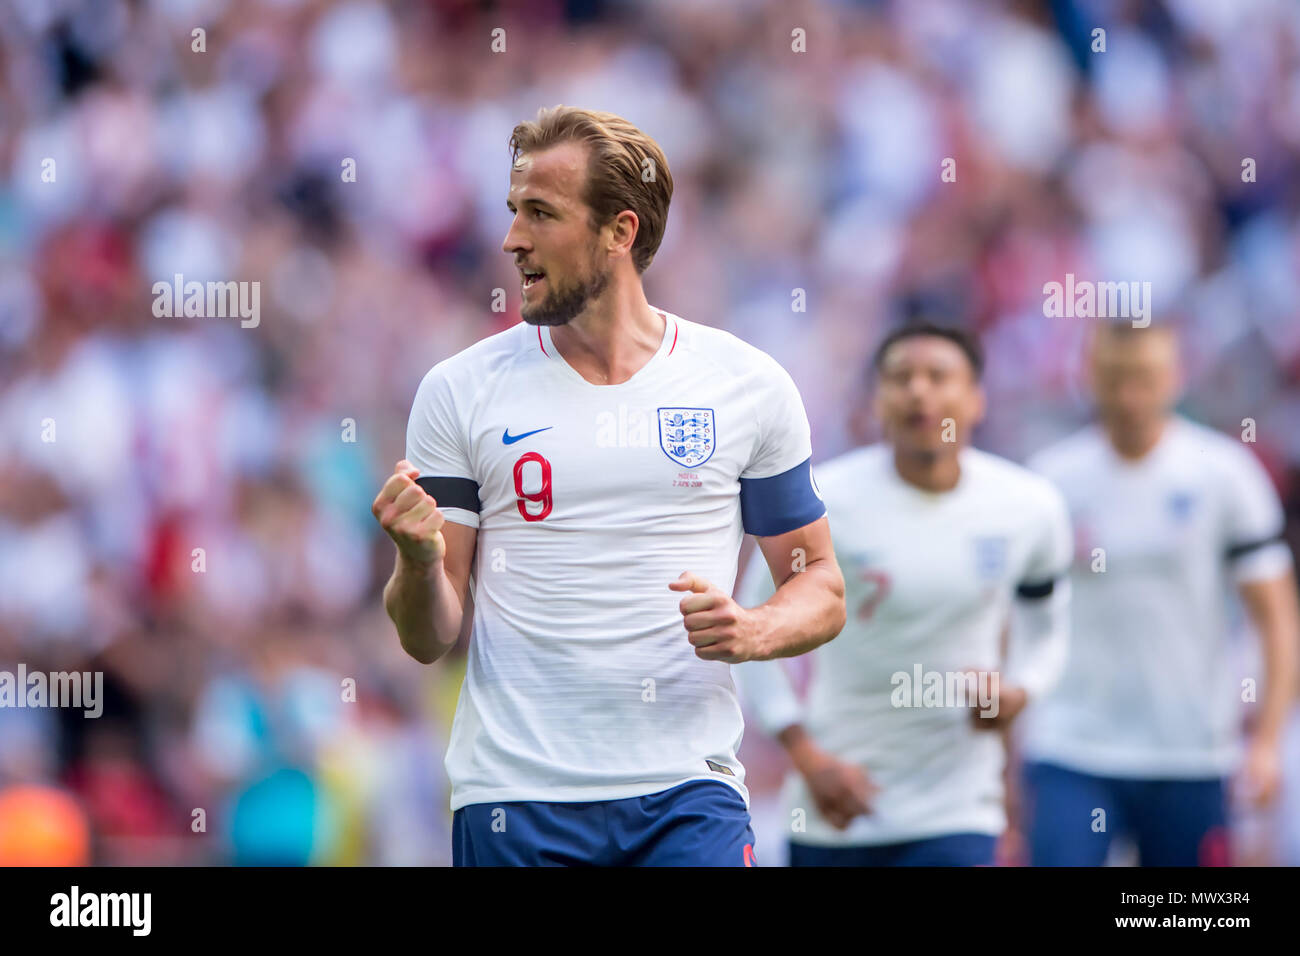 London, UK. 2nd June 2018. Harry Kane of England celebrates scoring his side second goal during the International Friendly match between England and Nigeria at Wembley Stadium, London, England on 2 June 2018. Credit: THX Images/Alamy Live News Stock Photo